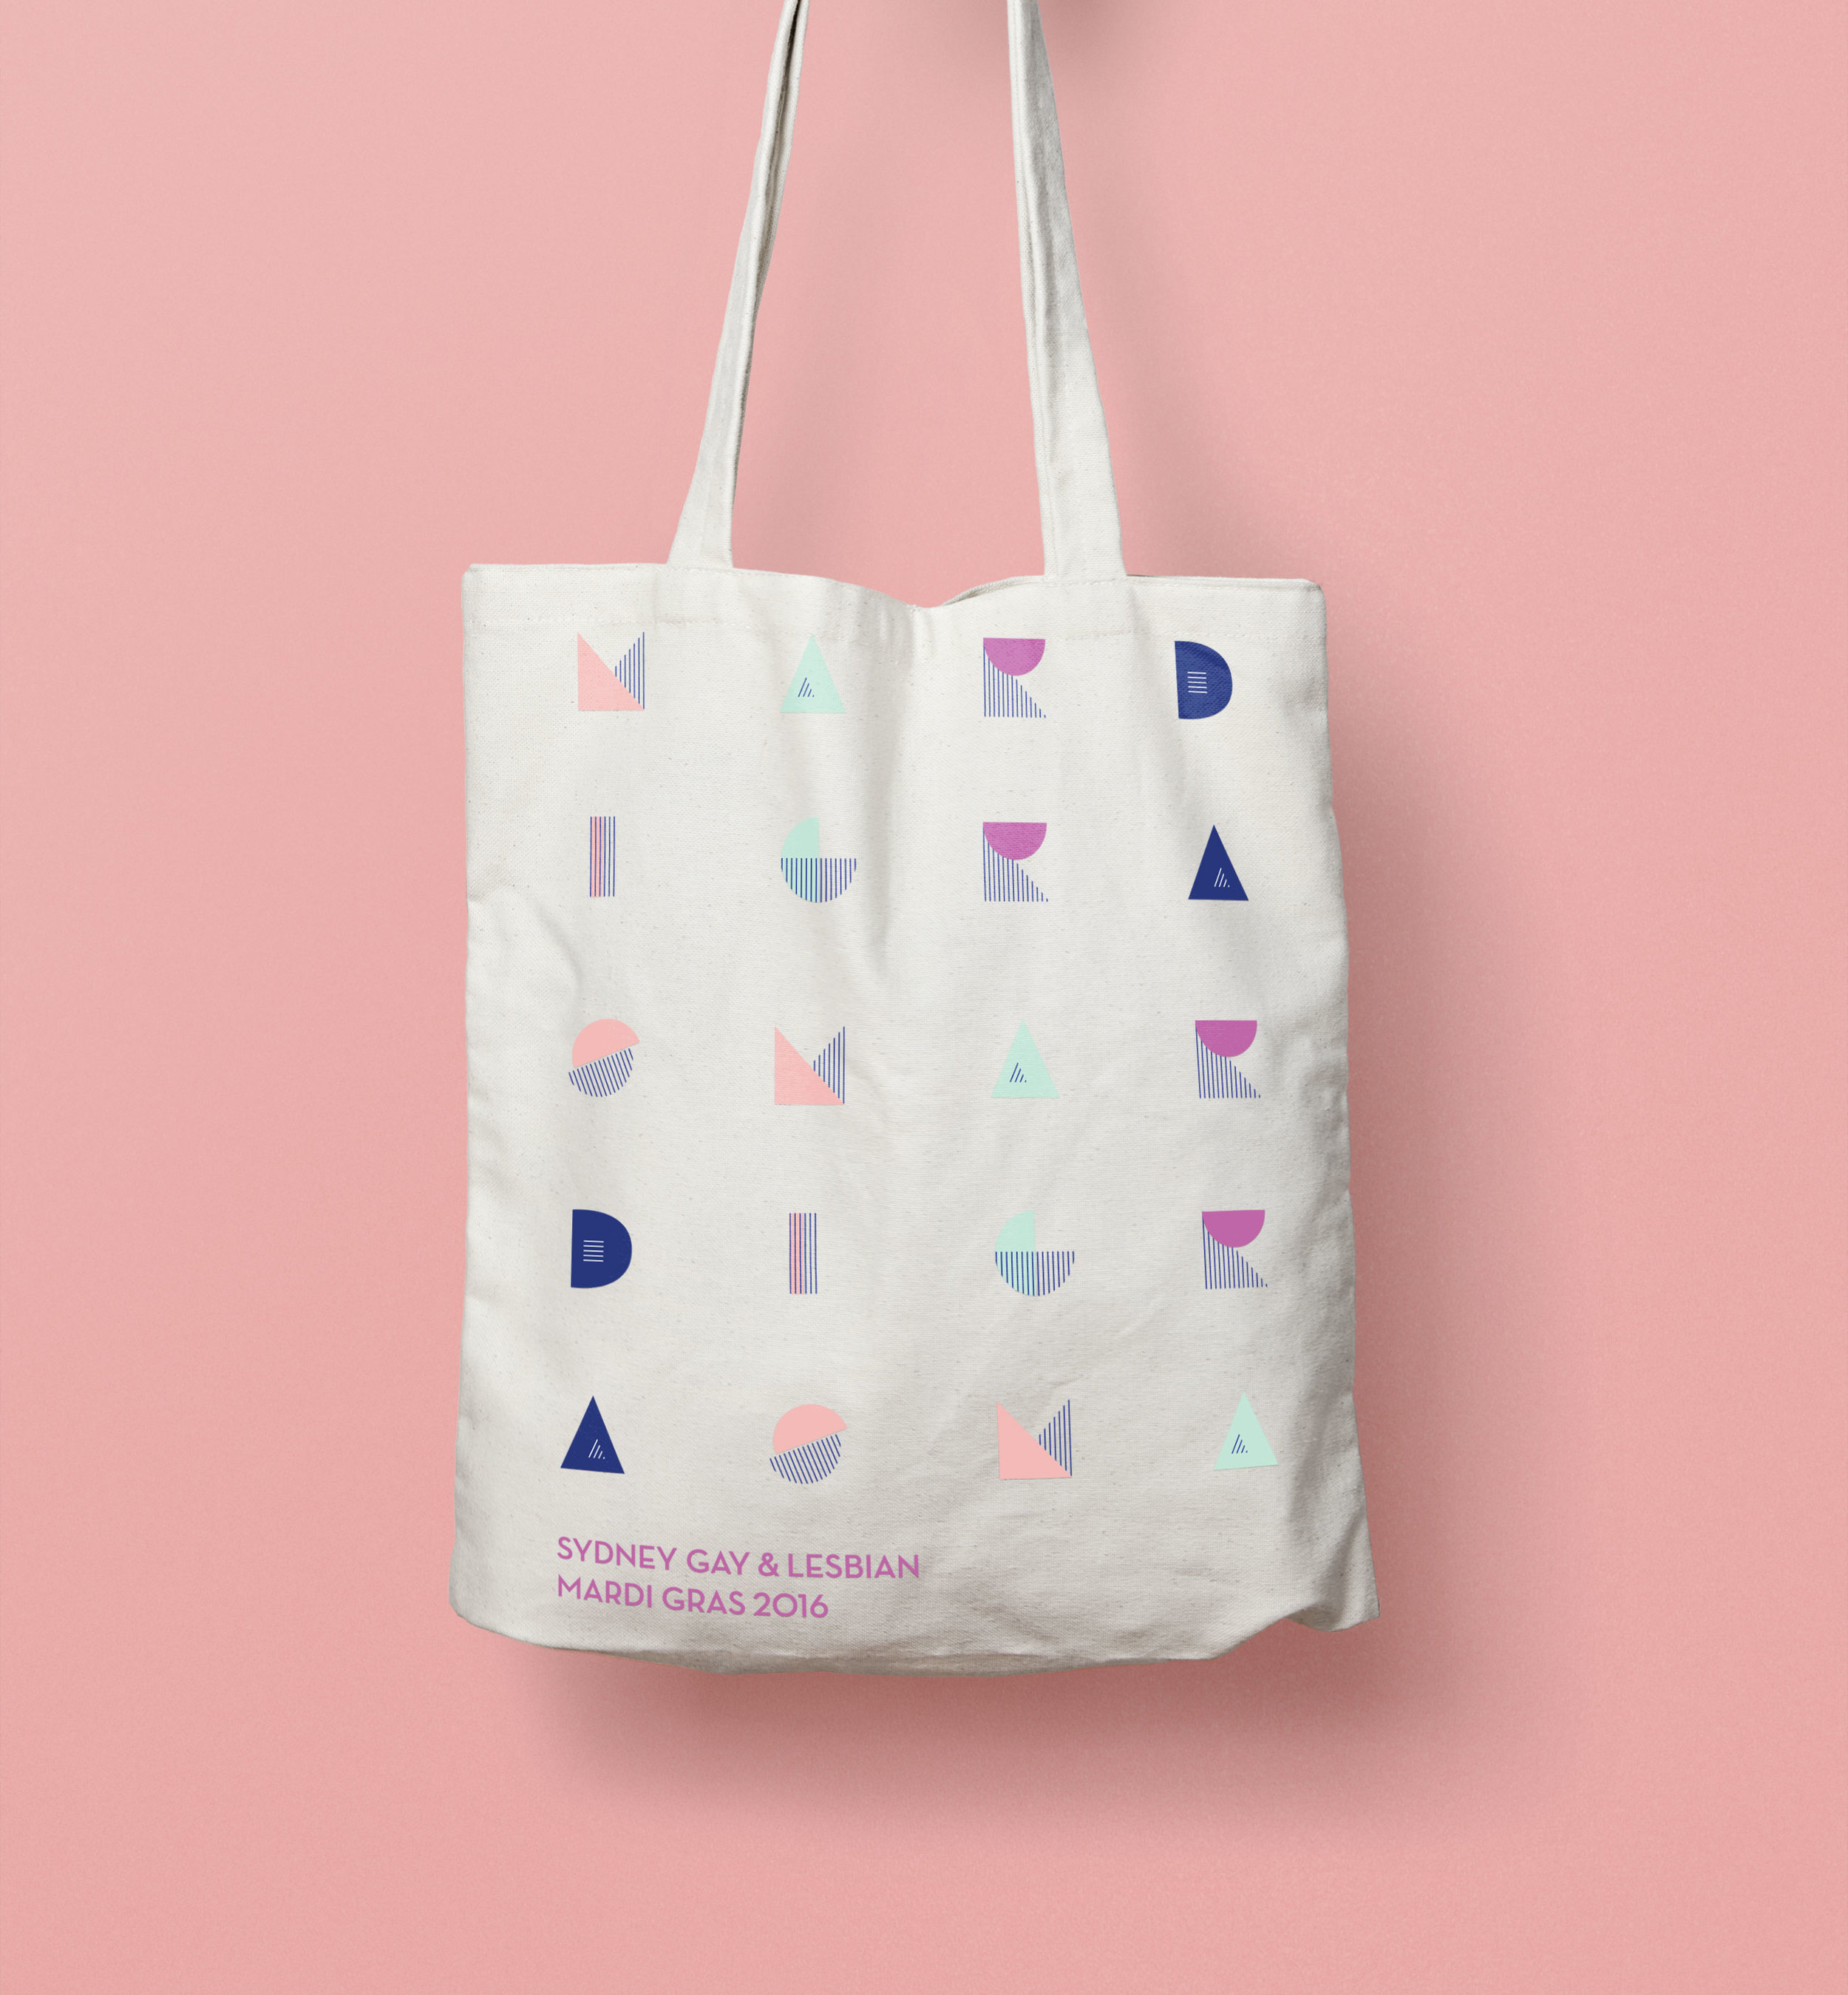 MARDI_Canvas-Tote-Bag-MockUp_RGB.jpg